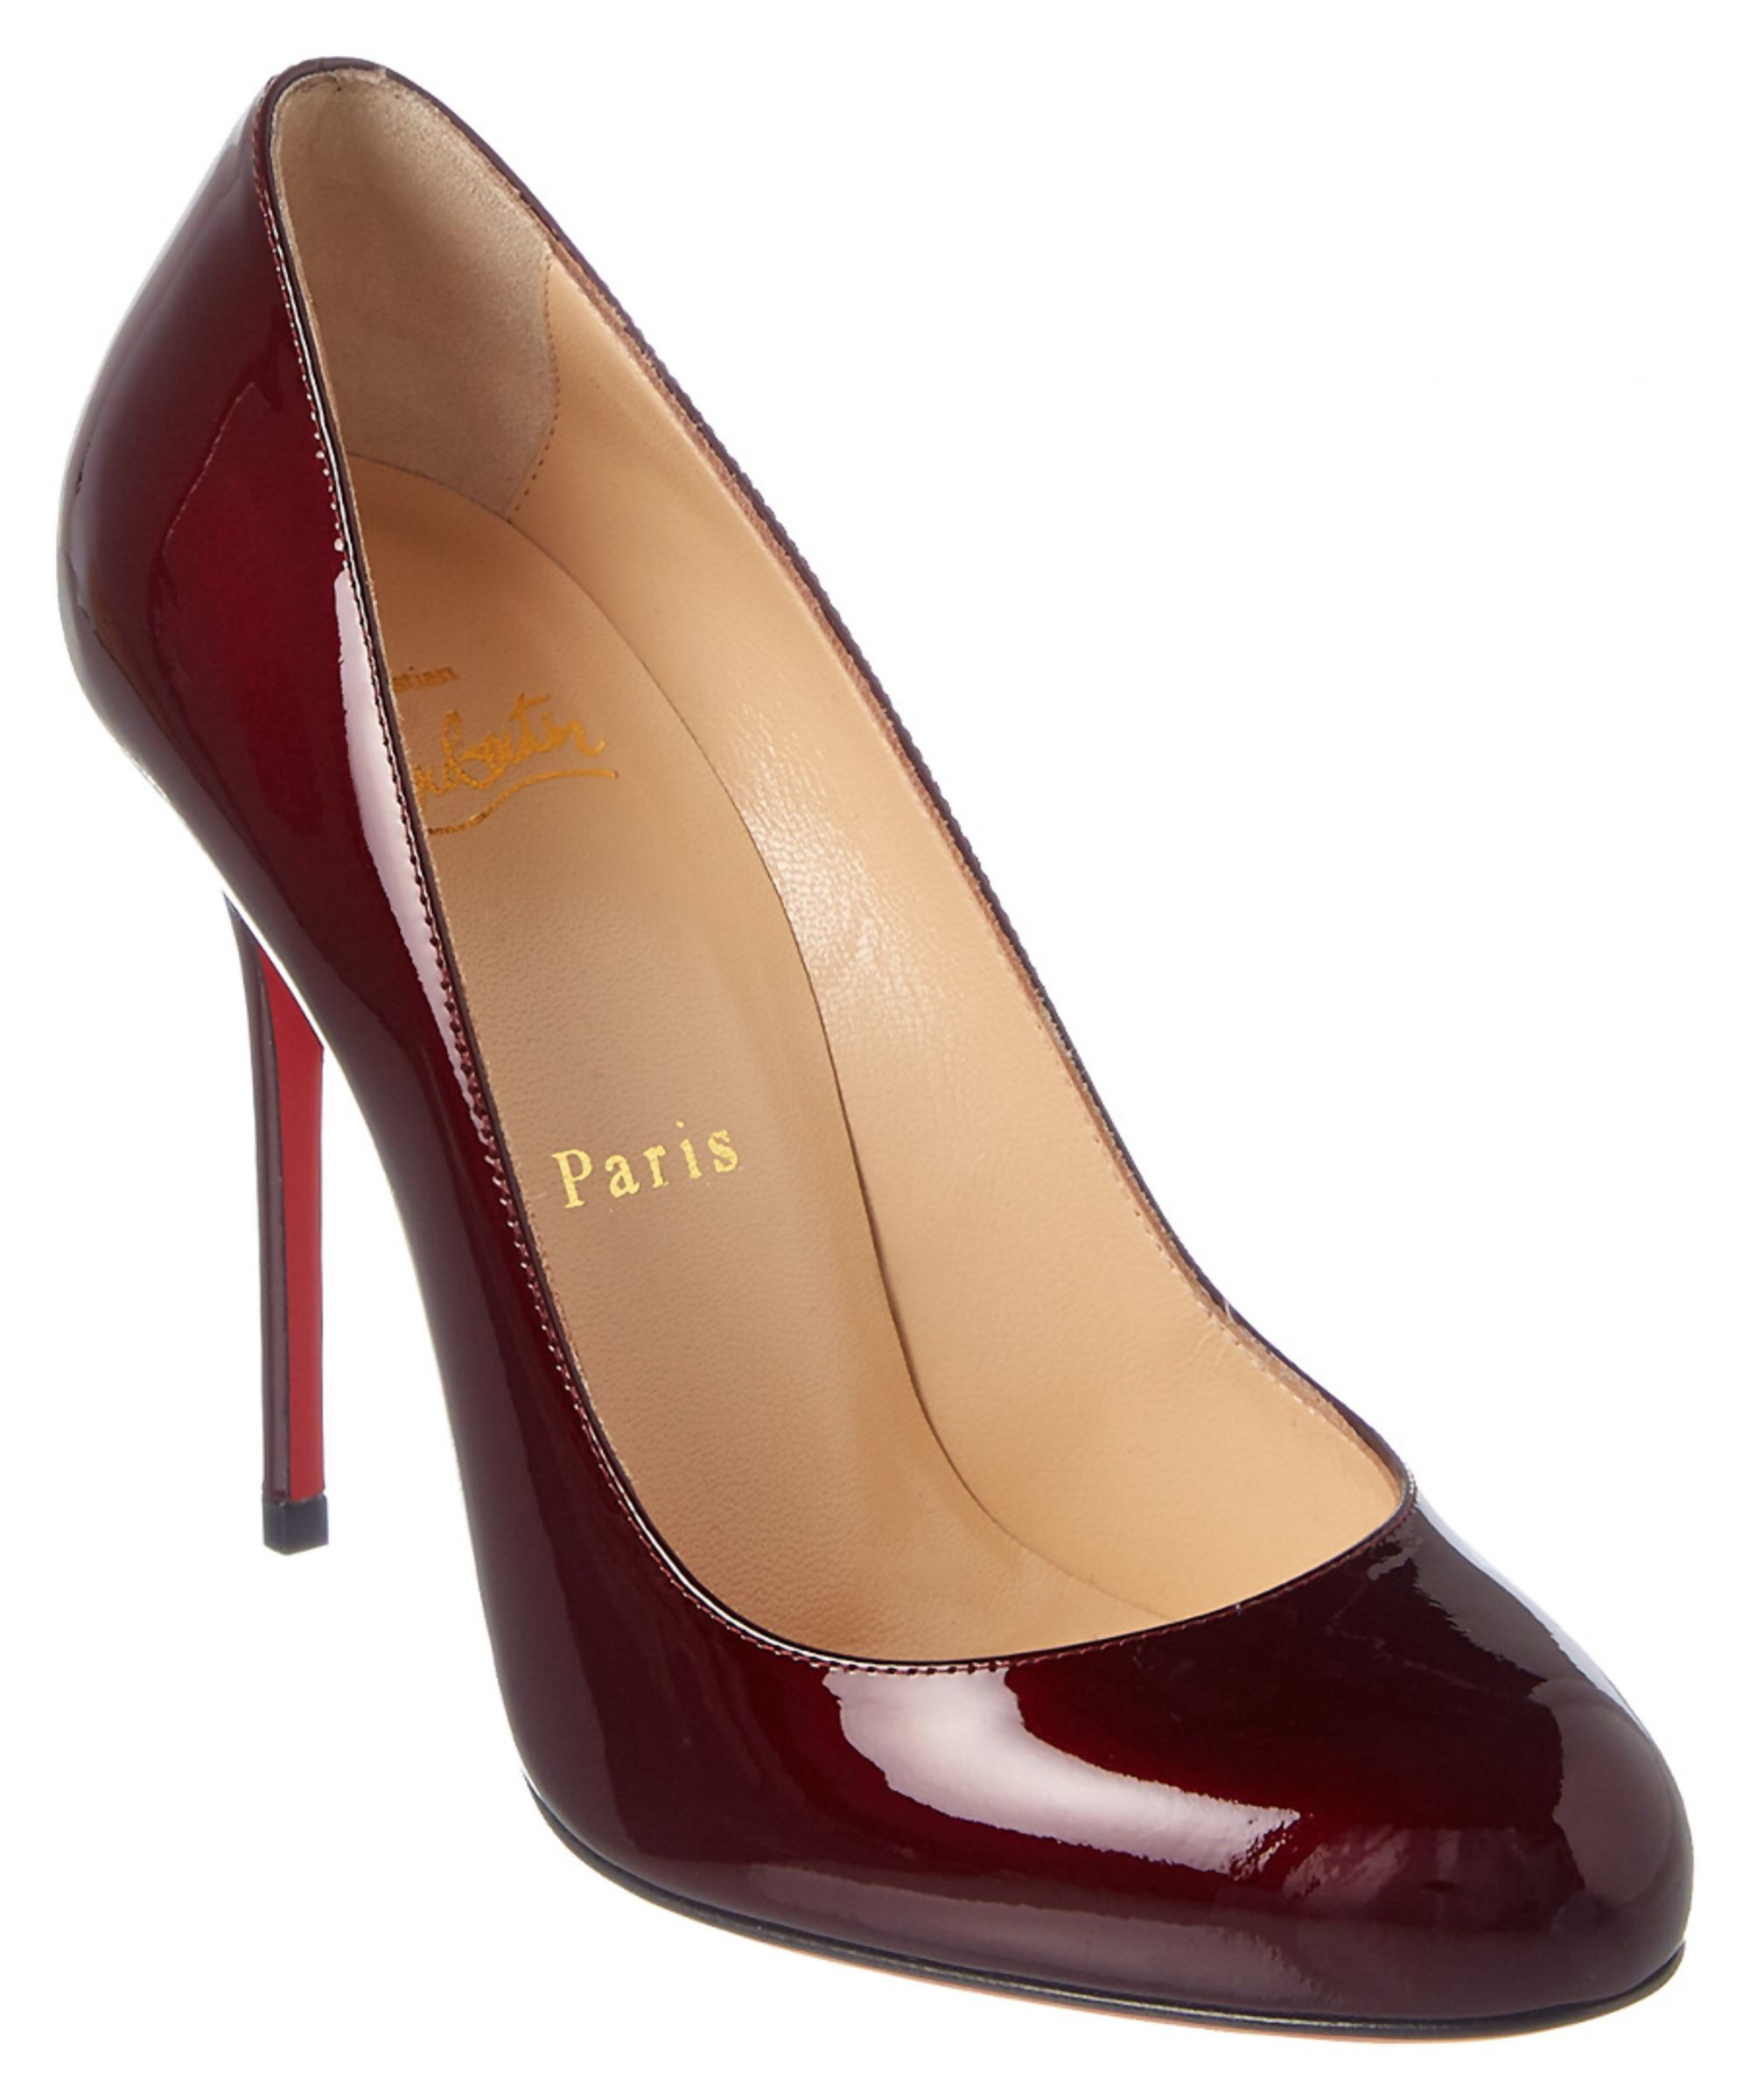 ef40e36d34a ... spain christian louboutin christian louboutin fifi patent pump shoes  pumps high heels 75402 995a2